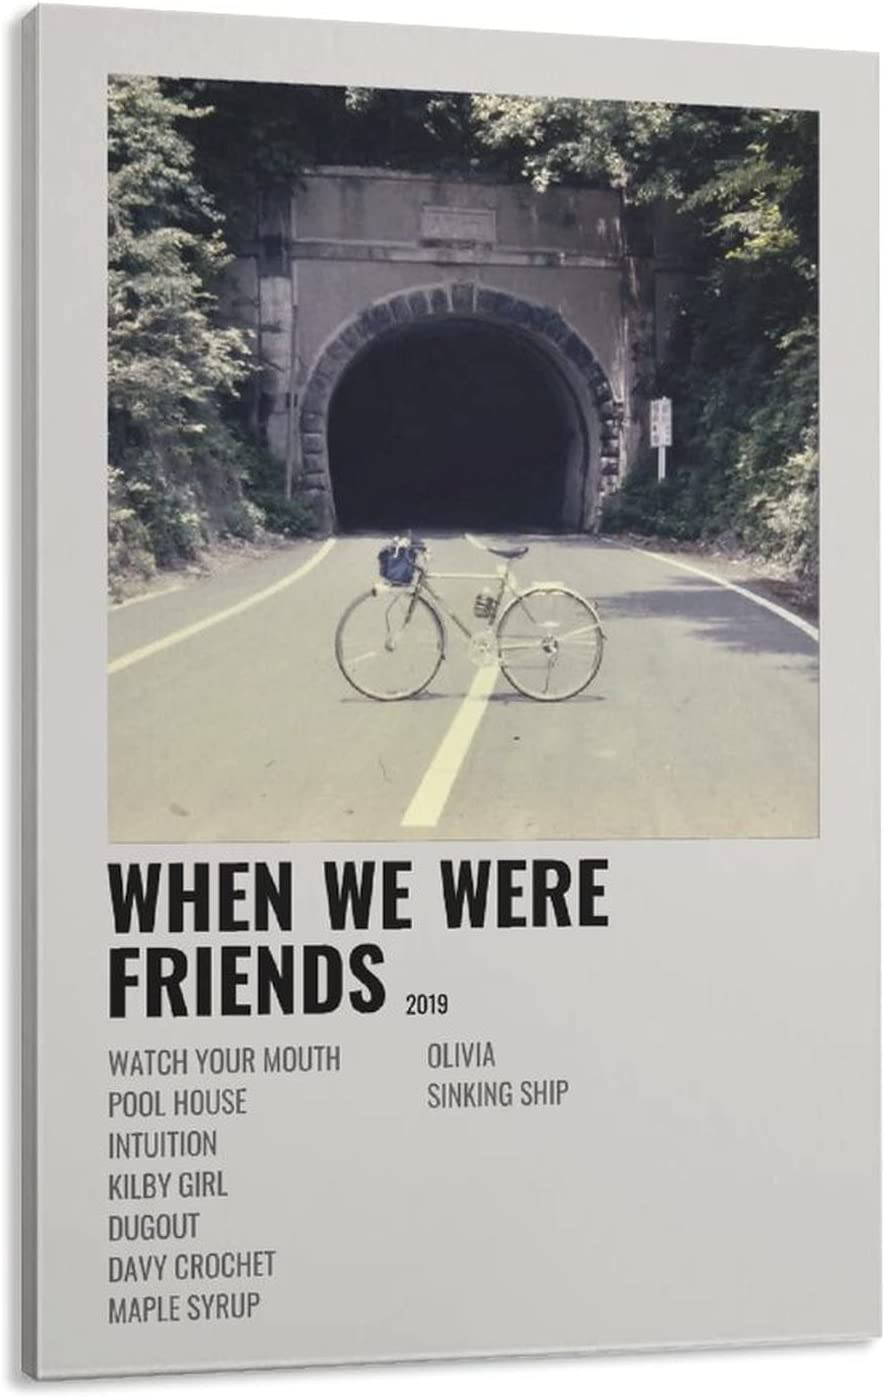 When We Were Friends The Backseat Canvas Cheap bargain Poster Art Manufacturer regenerated product Wall Lovers